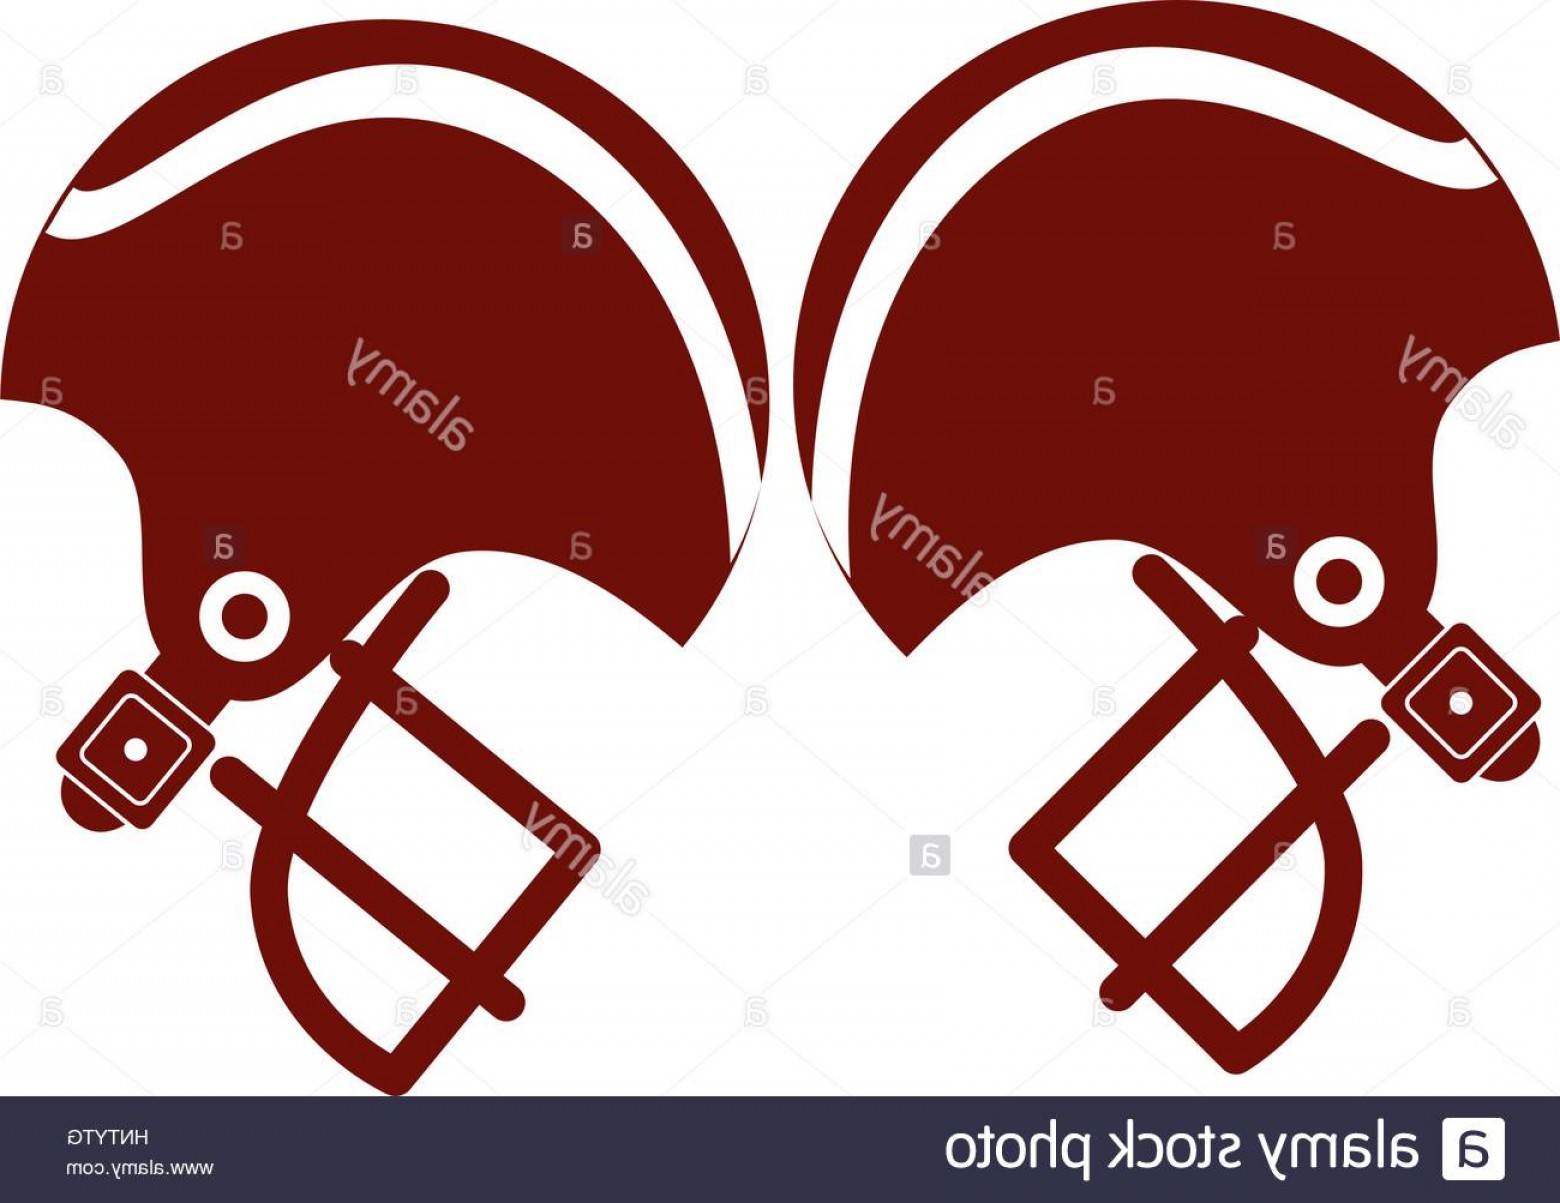 High Res Vector American Football: Stock Photo Pair Of American Football Helmet Vector Illustration